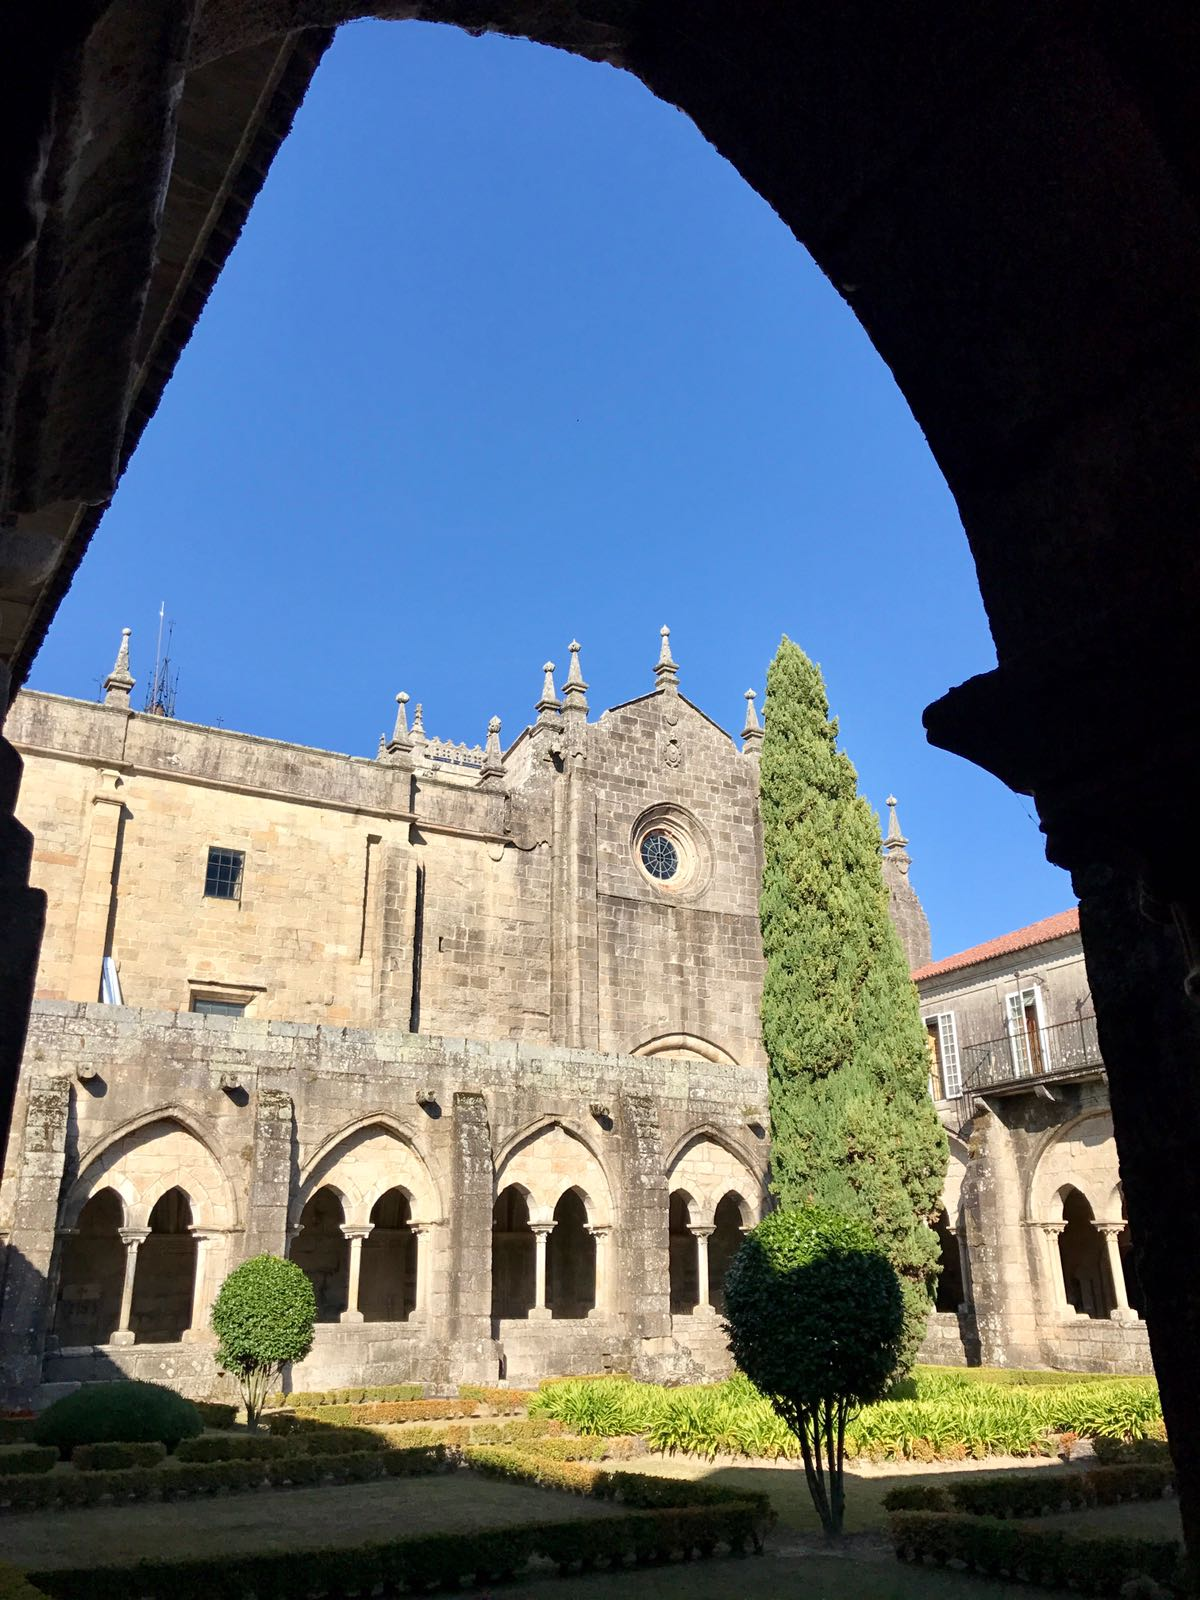 View of the cloister of Tui cathedral